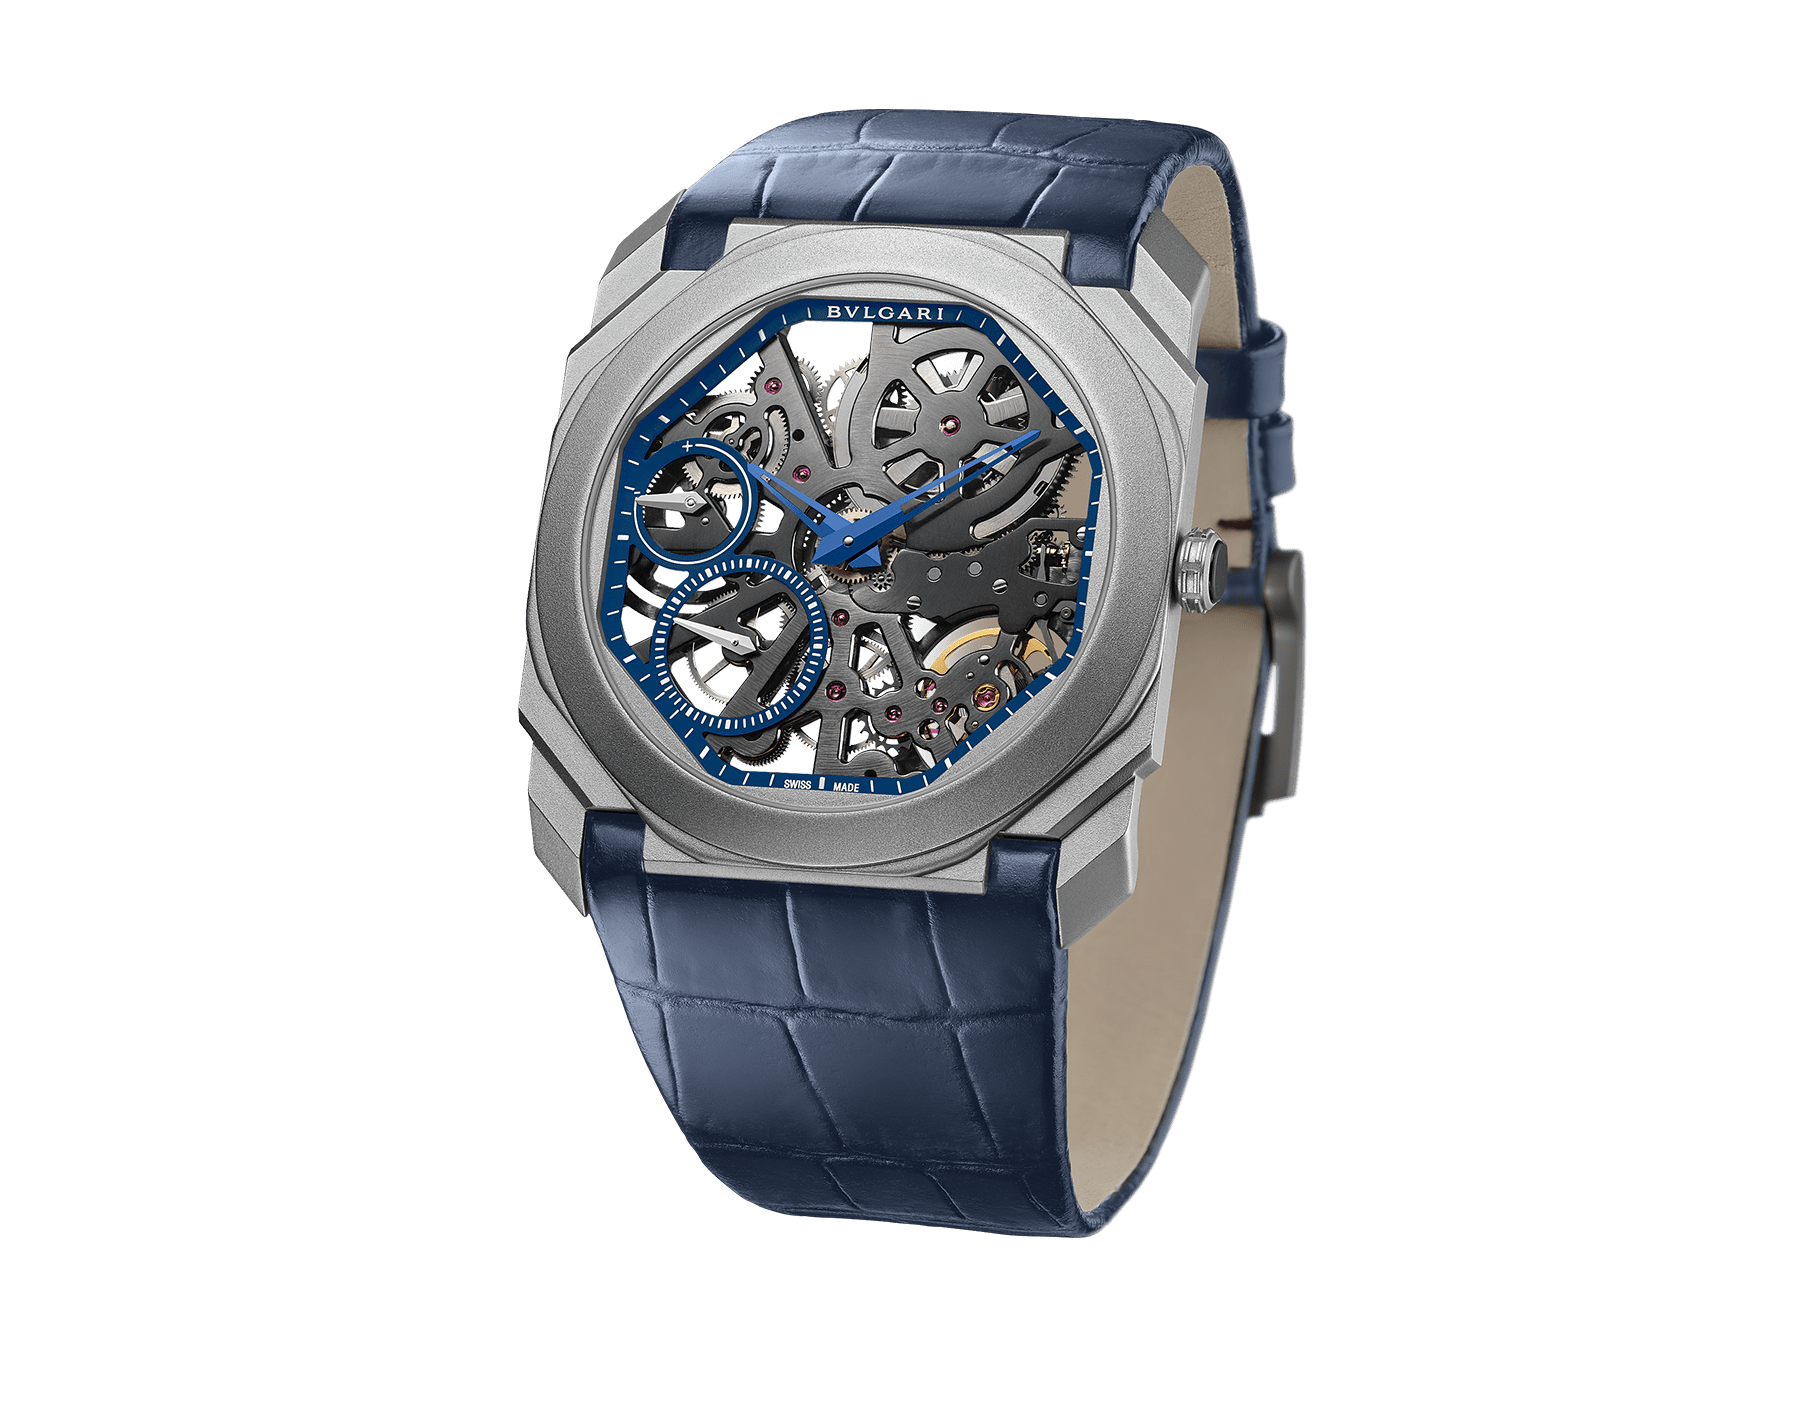 Octo Finissimo Skeleton Limited Edition watch with extra-thin mechanical manufacture movement (2.23mm thick), manual winding, small seconds, power reserve indication, sandblasted titanium case, skeletonized blue dial, blue hands and blue alligator bracelet 102941 image 1